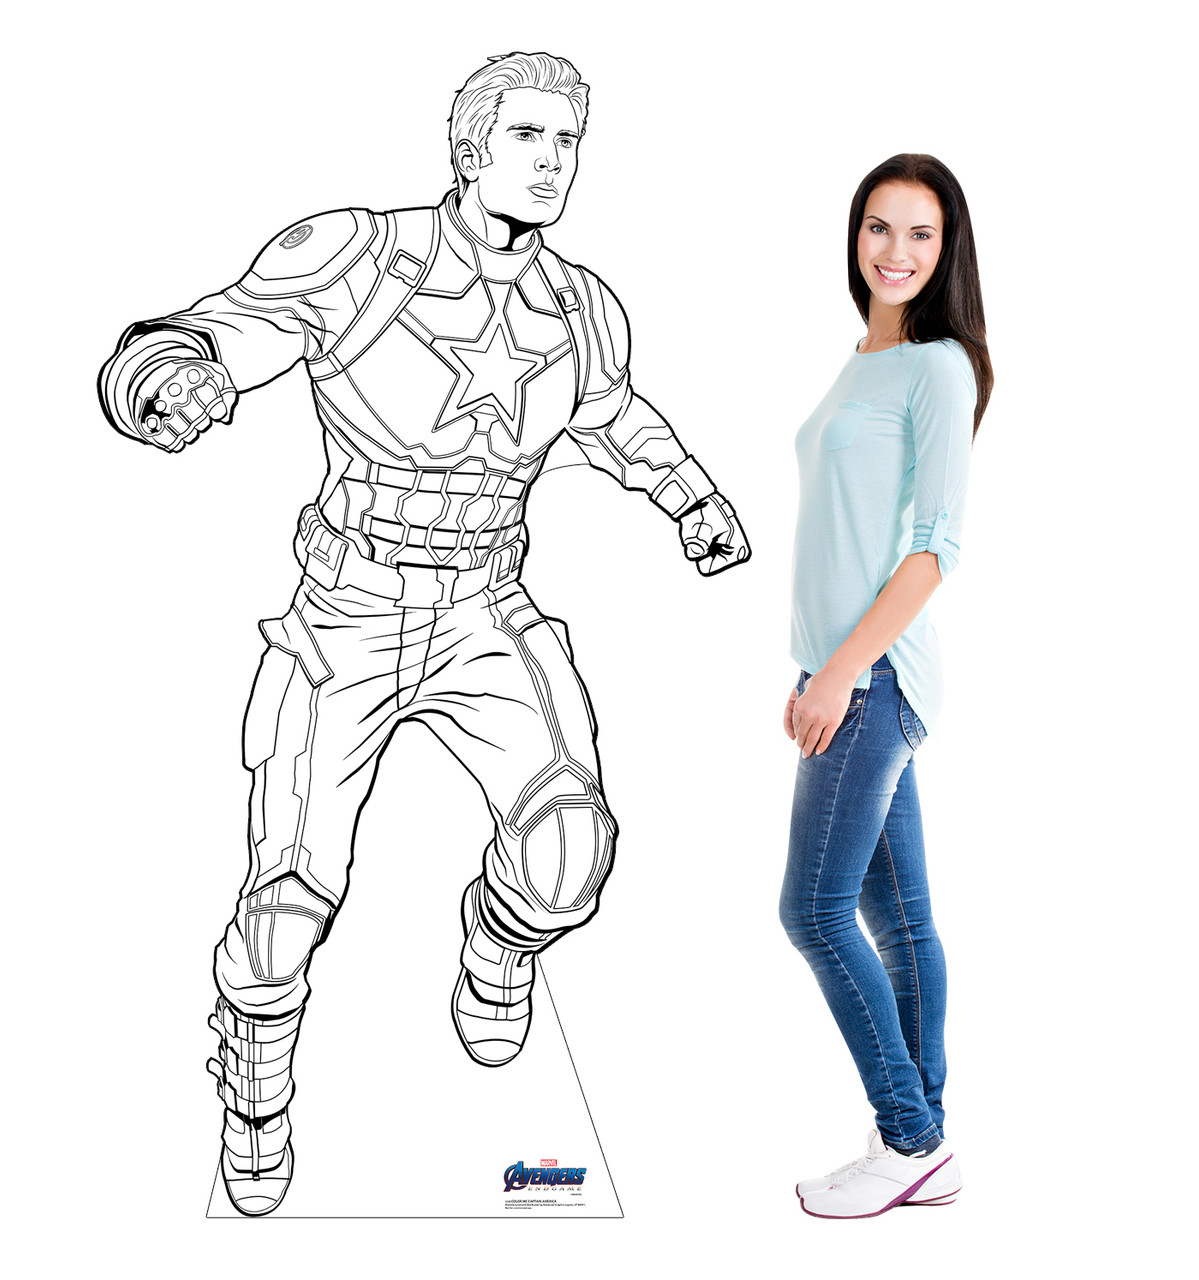 Life-size Color Me Captain America Standee with model.